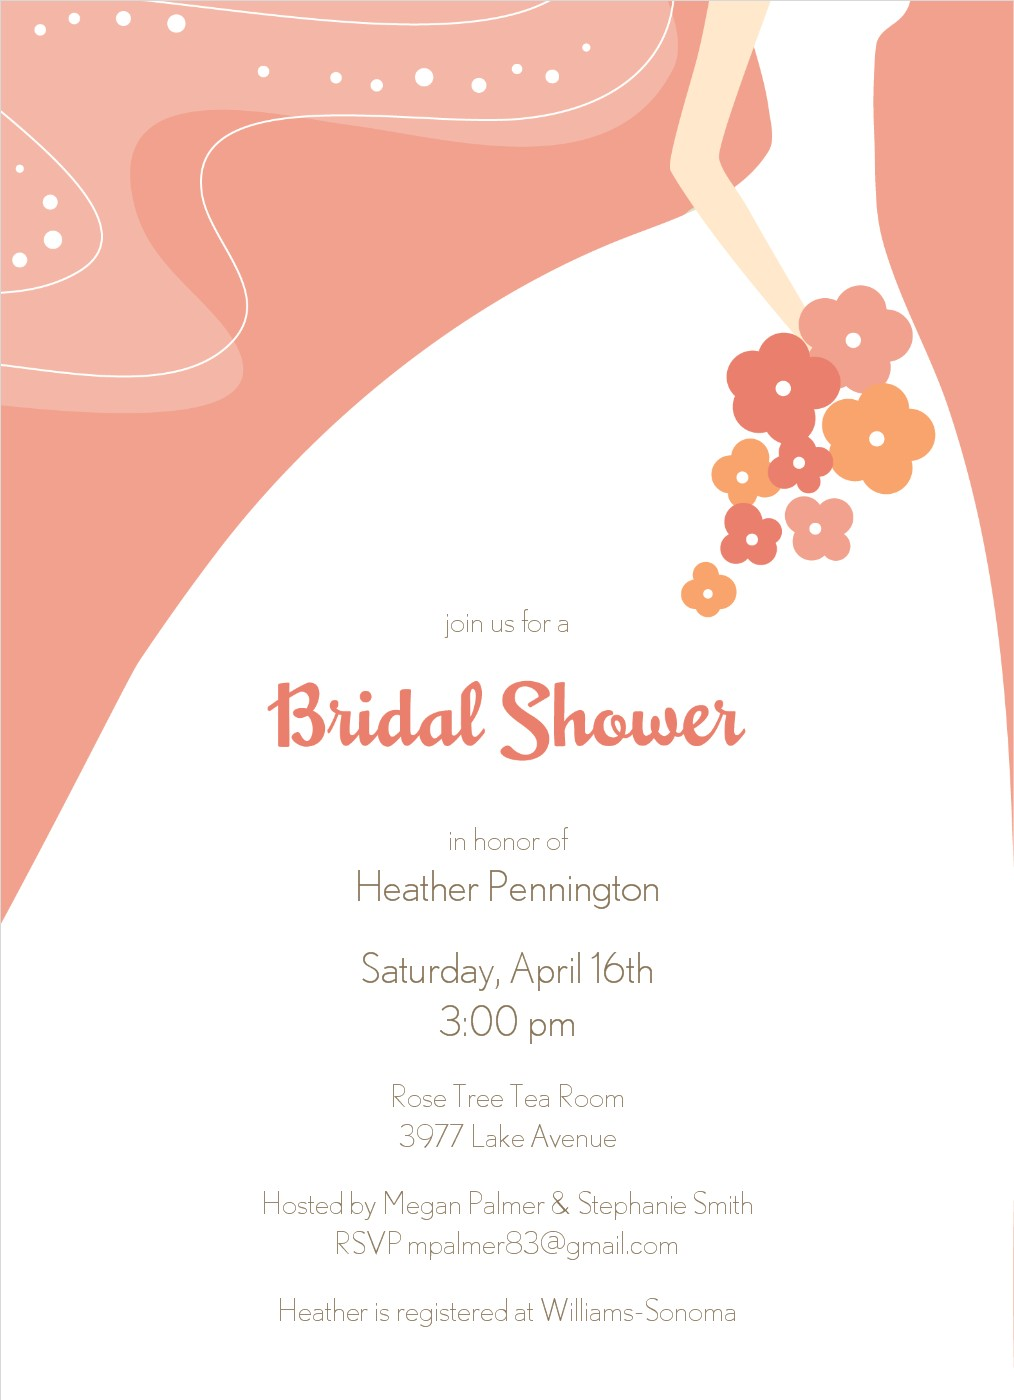 graphic regarding Bridal Shower Invitations Free Printable titled Totally free Printable Bridal Shower Invites Templates N3 absolutely free impression